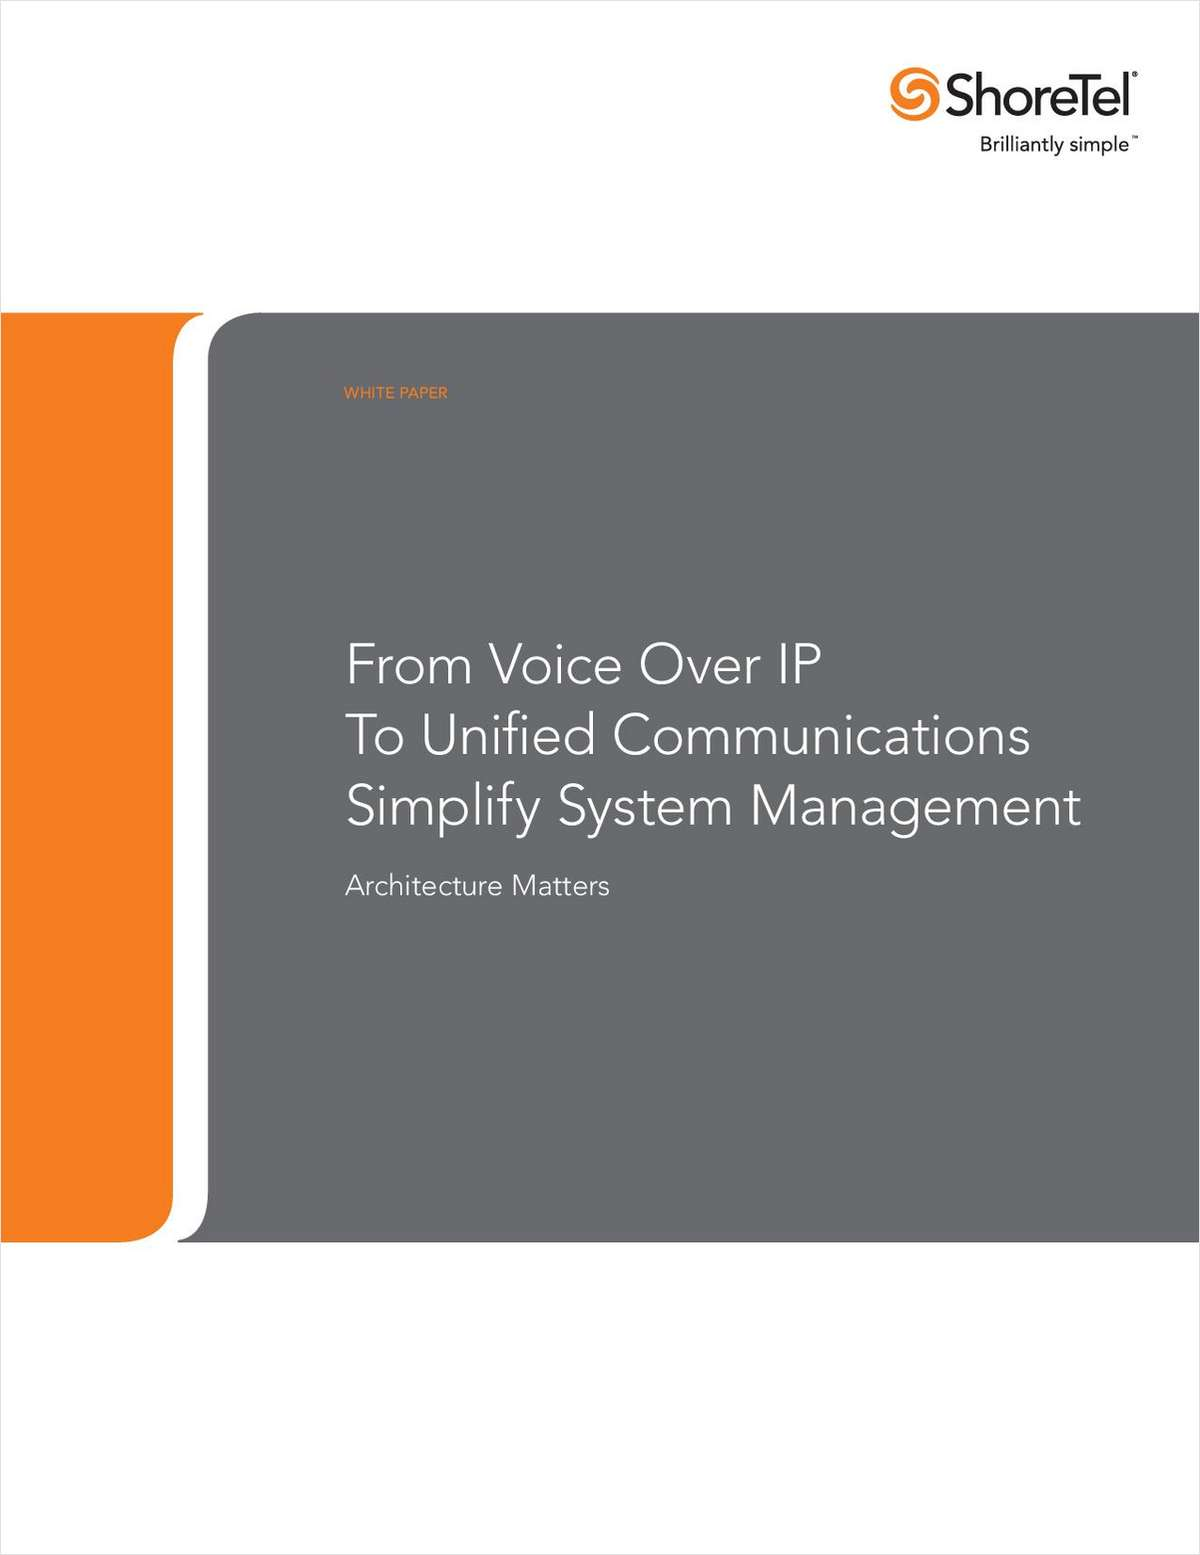 From Voice over IP to Unified Communications: Simplify System Management